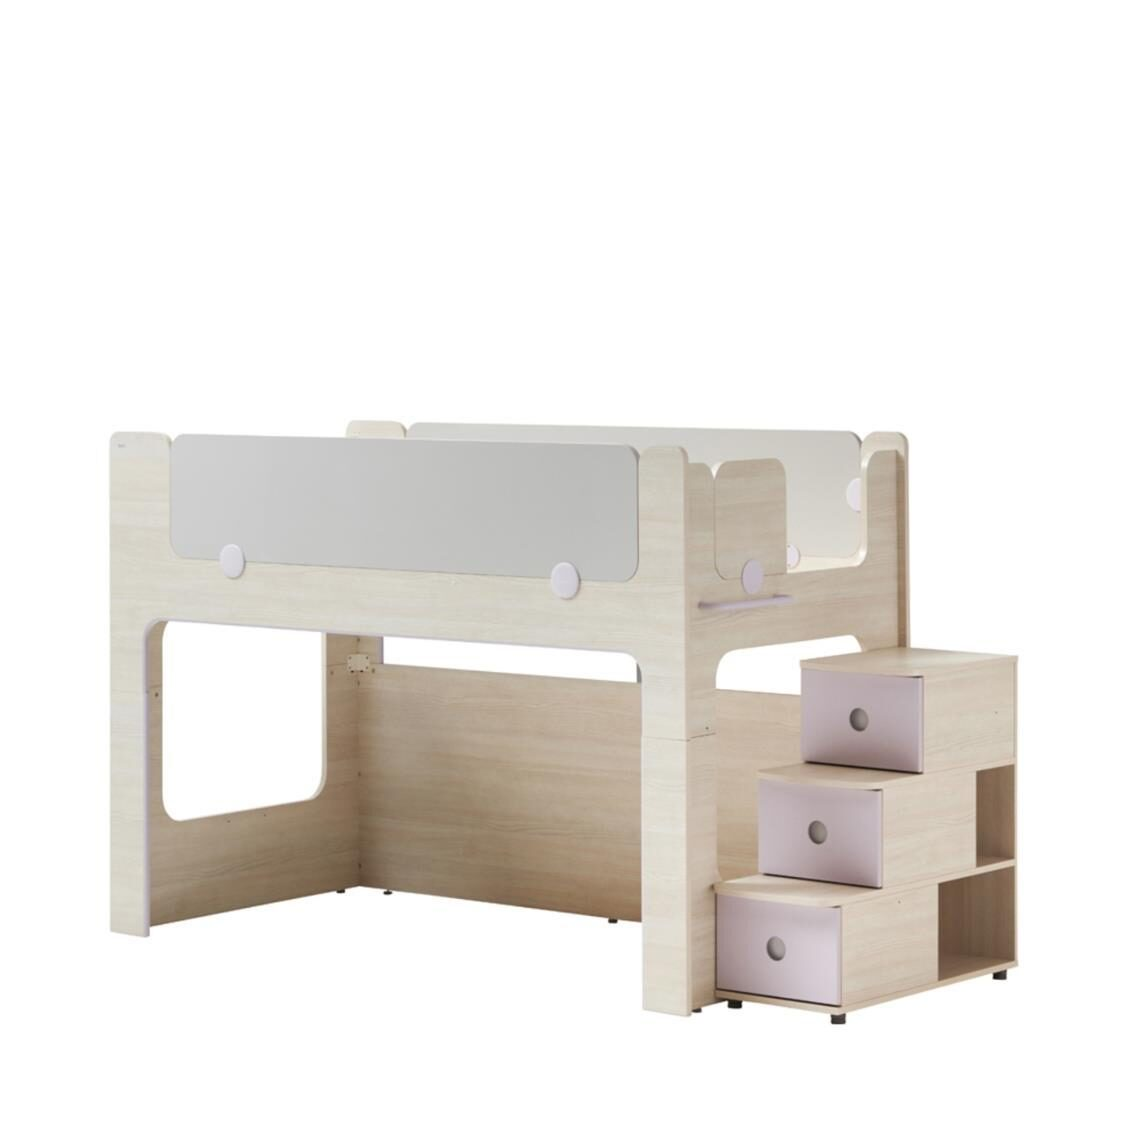 Cabin Bunk Bed Stairs Cabinet OSLU Olmless Ruster Light Purple